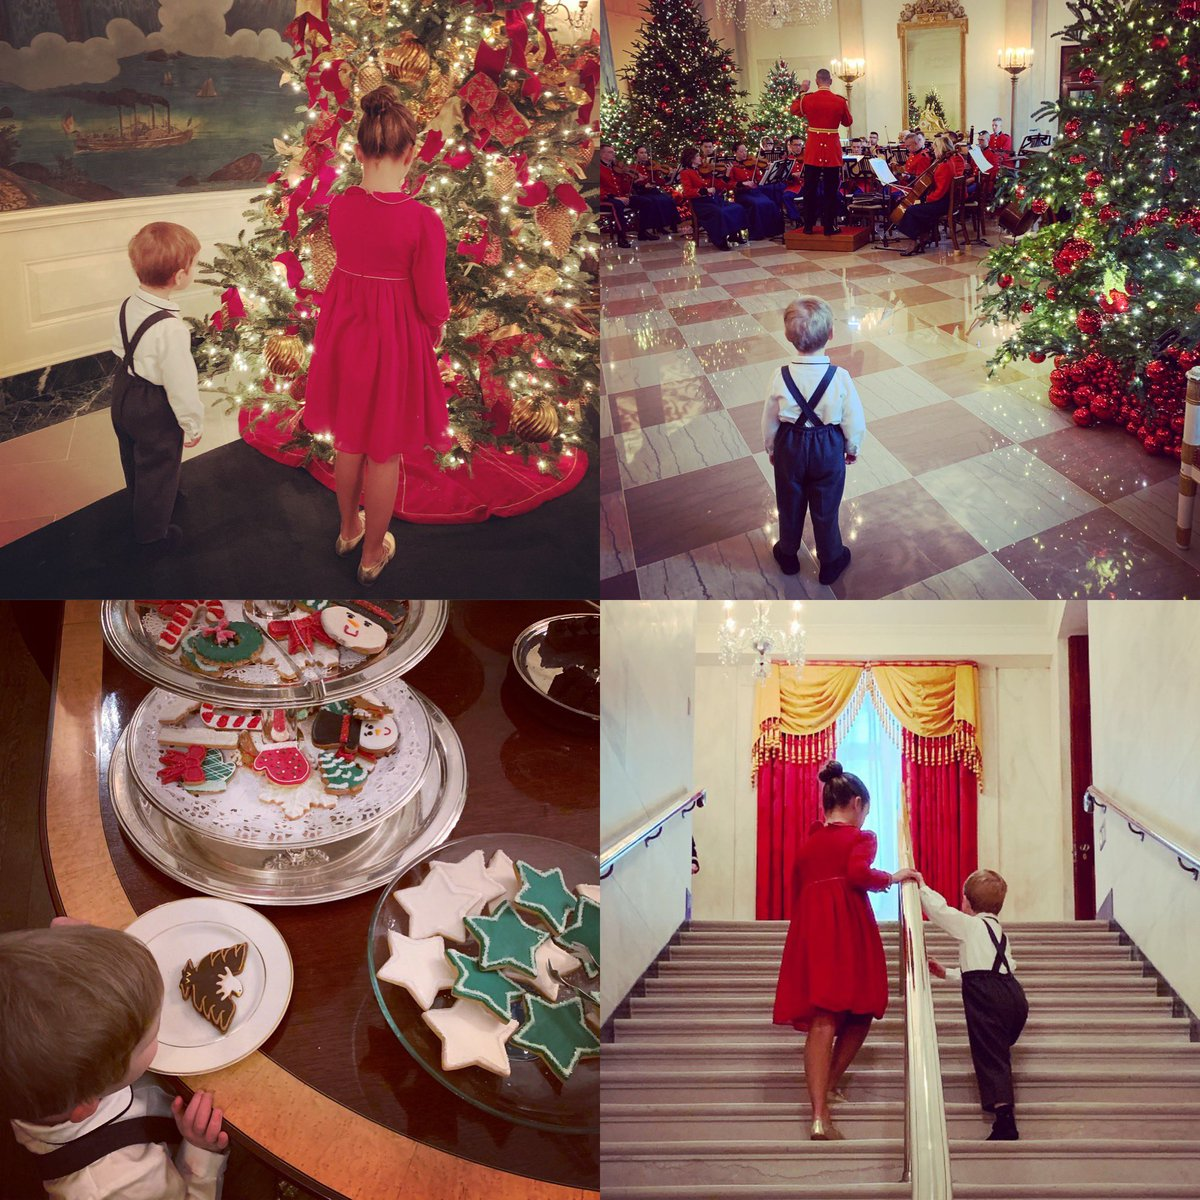 Holiday cheer at the White House🎄